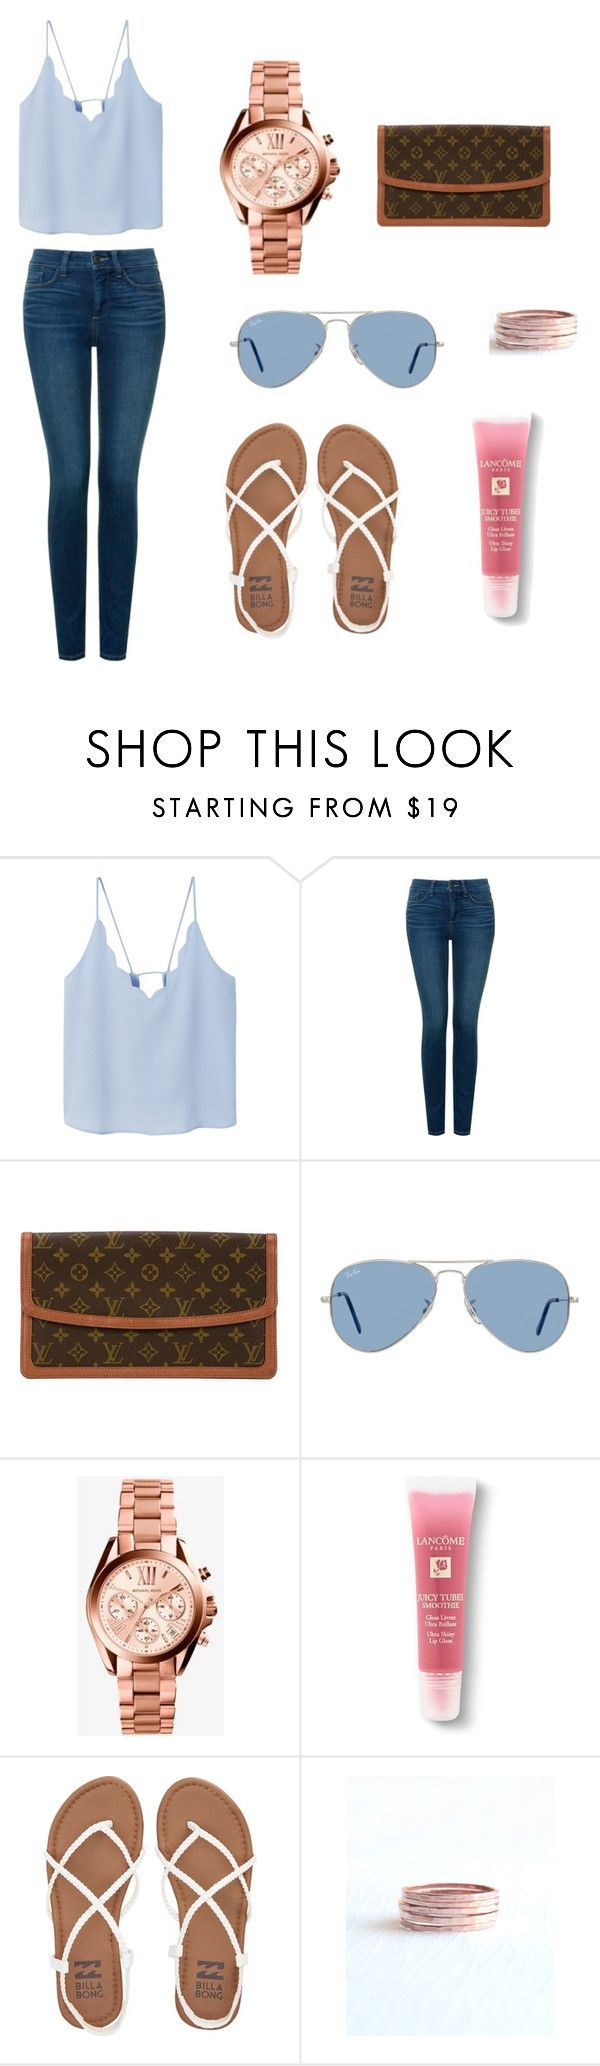 Calming Casual Blue by virkotie on Polyvore featuring MANGO, NYDJ, Billabong, Louis Vuitton, Michael Kors, Olive Yew, Ray-Ban and Lancôme